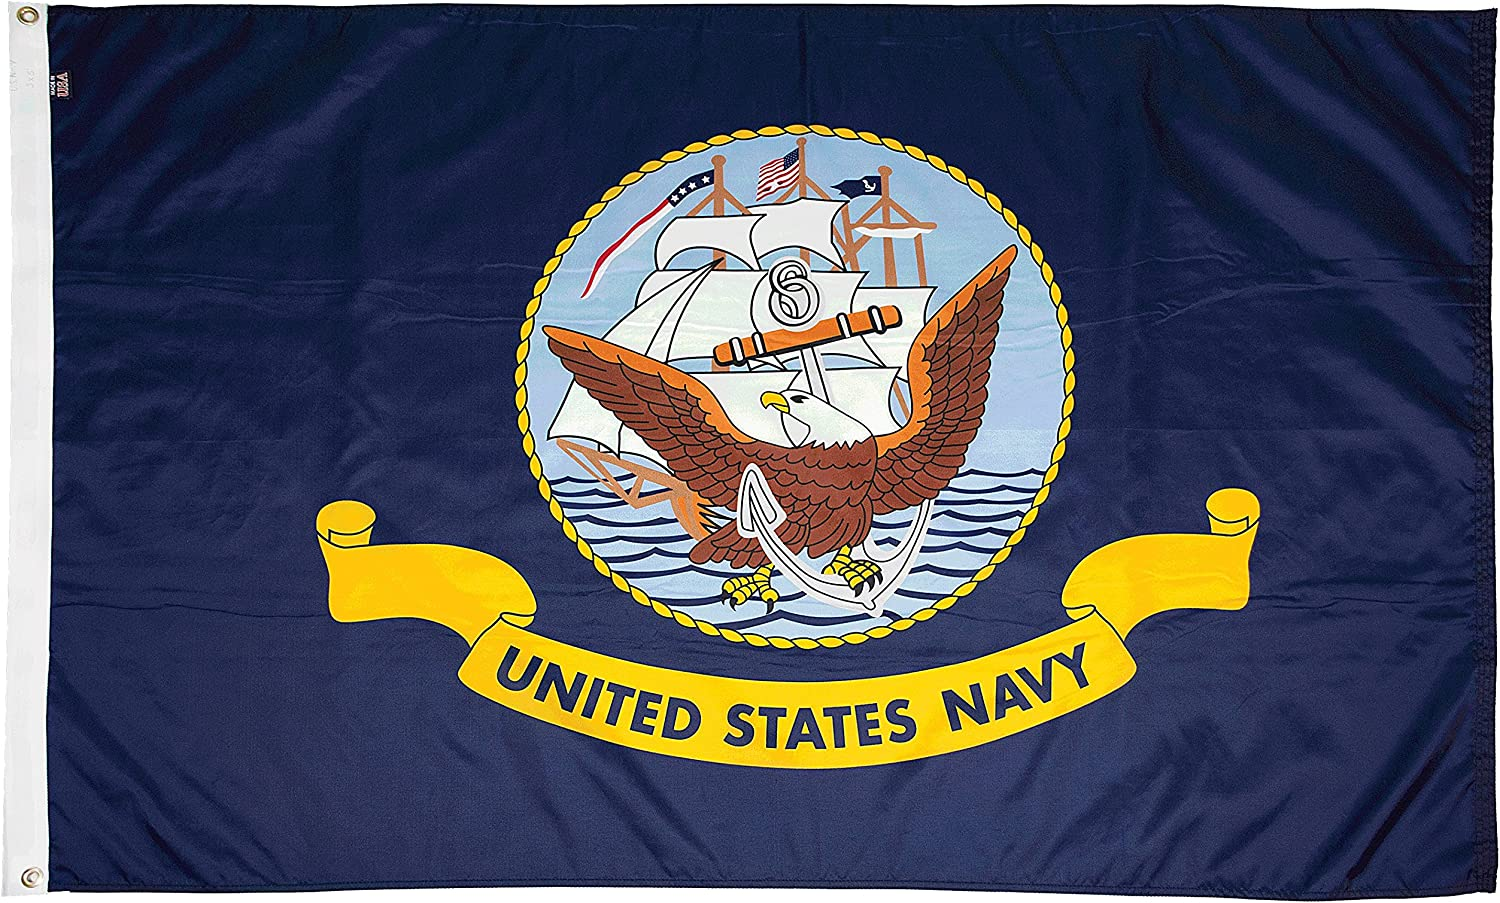 FlagSource U.S. Navy Nylon Military Flag, Made in The USA, 3x5'